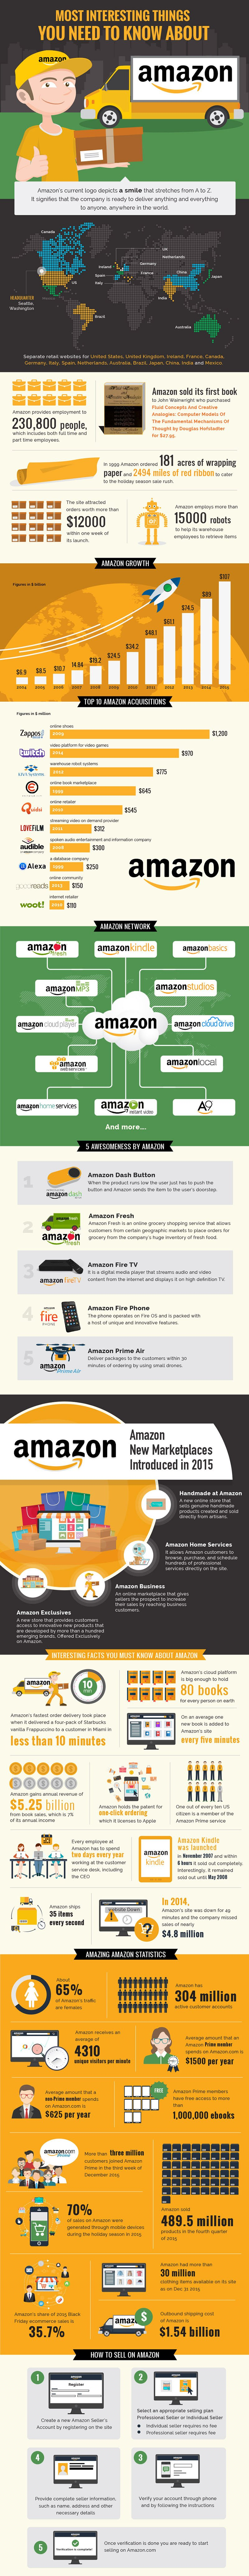 69 Interesting Facts About Amazon